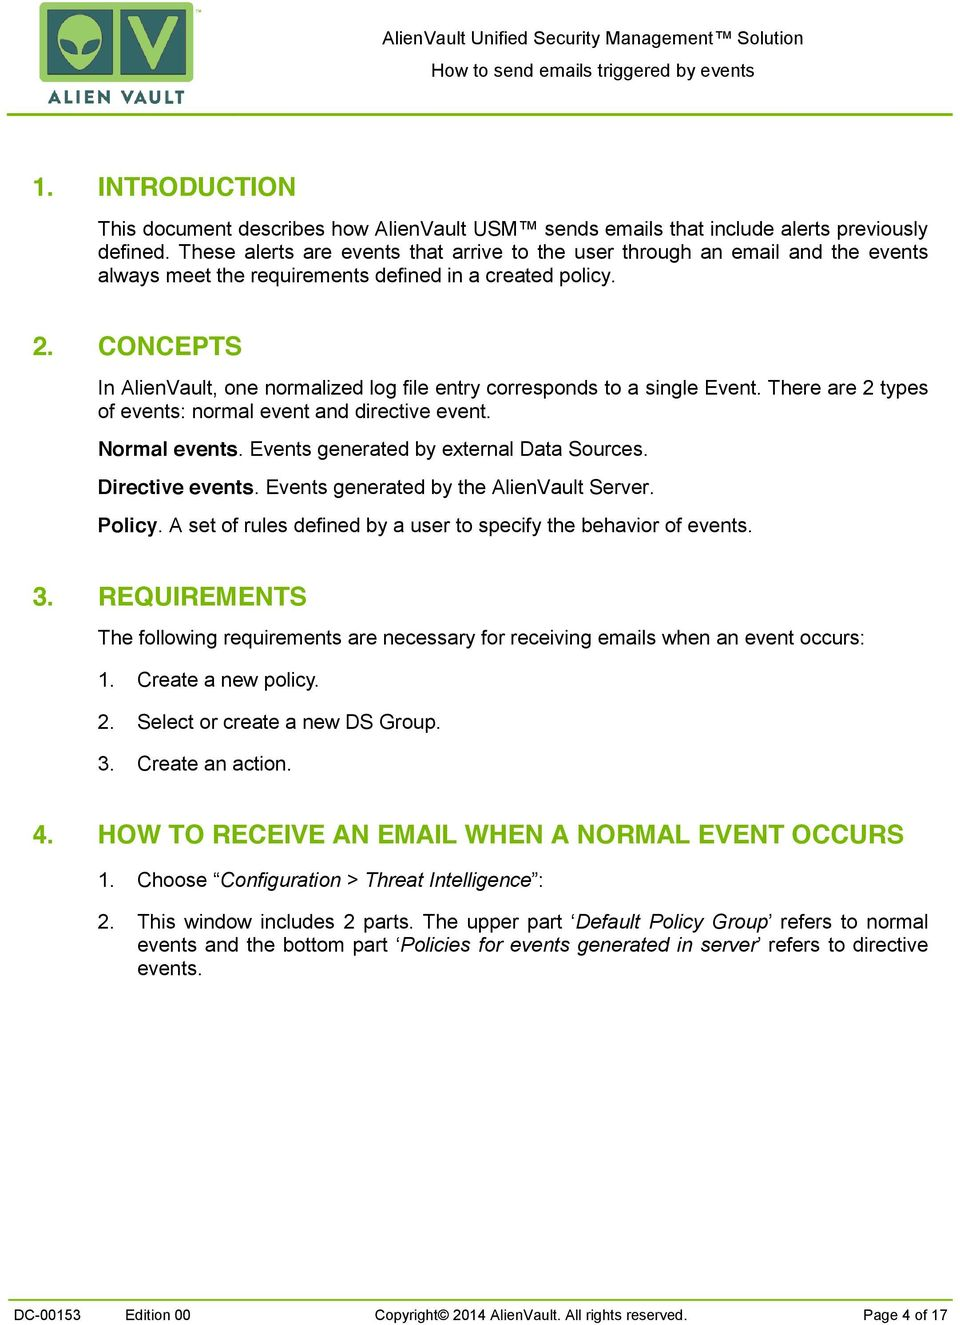 How to send s triggered by events - PDF